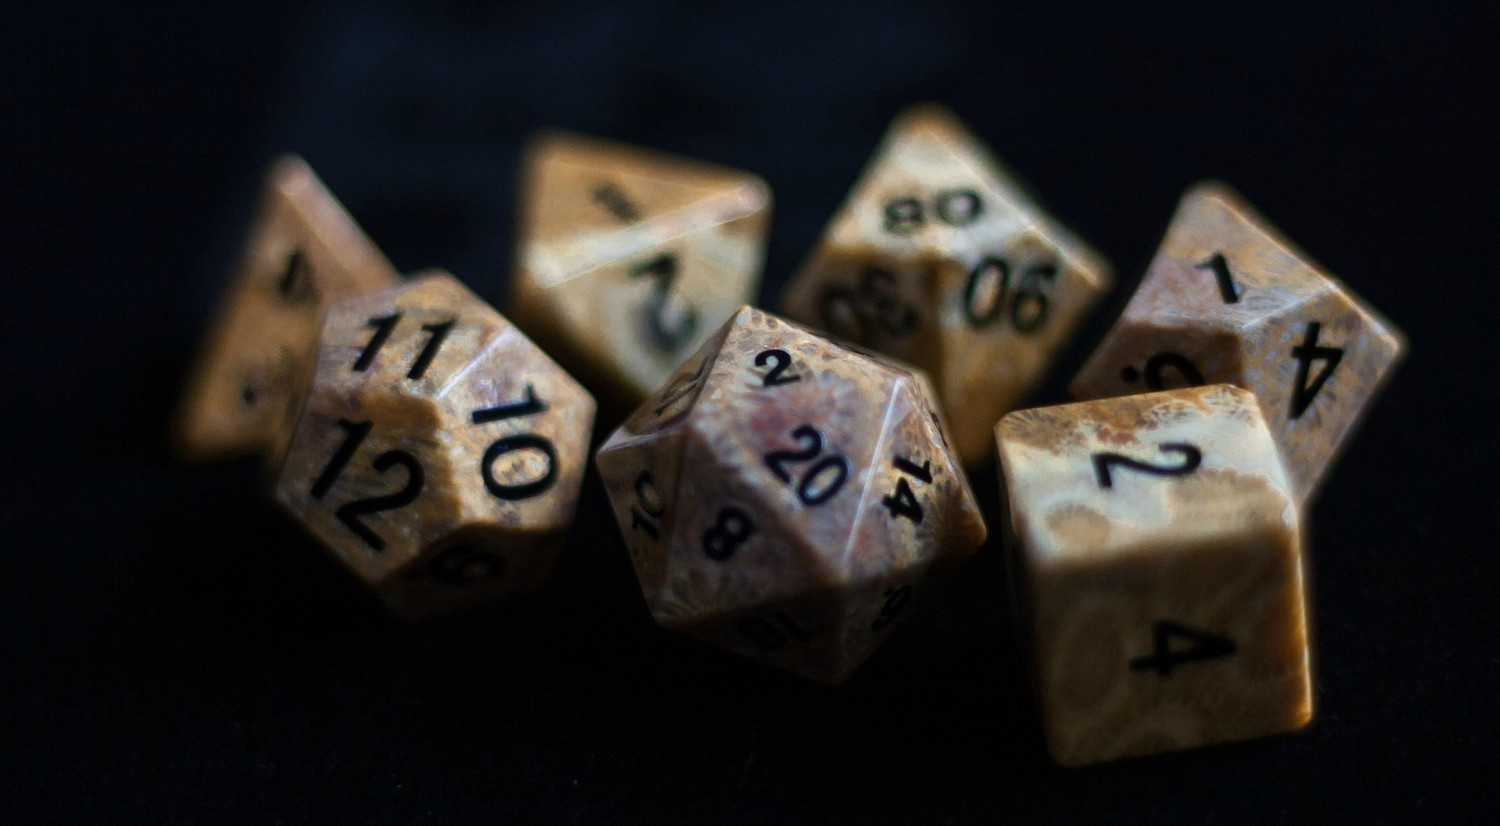 Coral Fossil: Full-Sized 16mm Polyhedral Dice Set